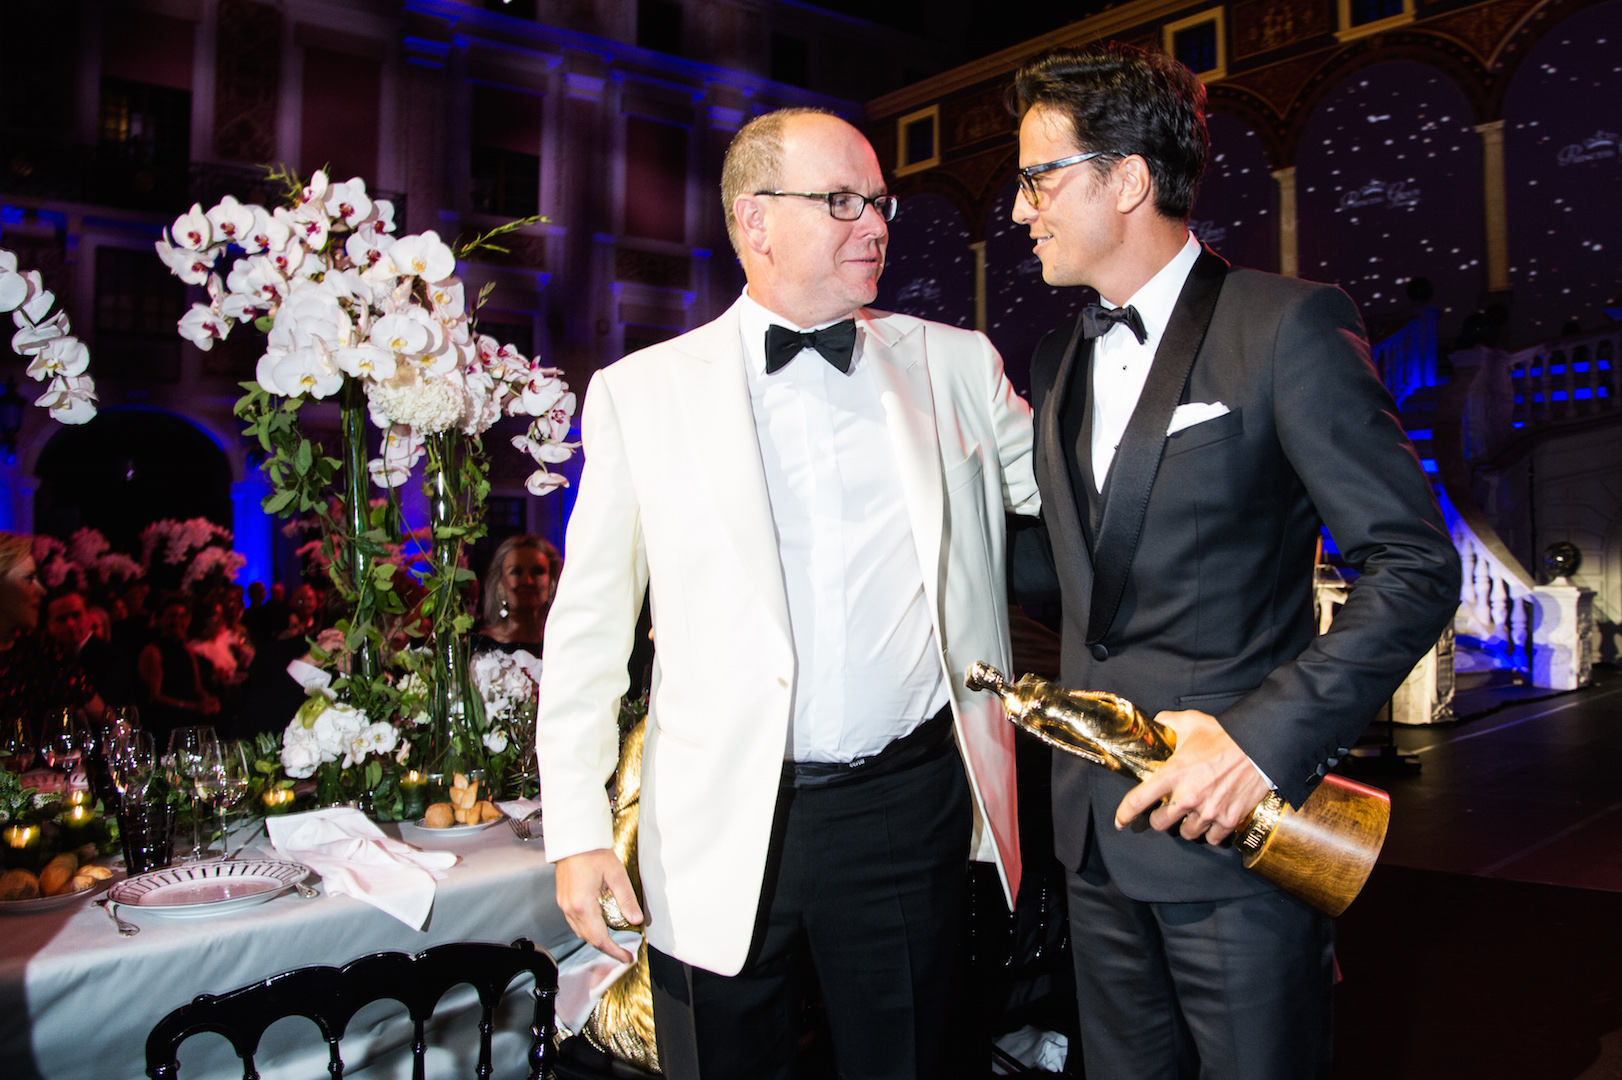 MONTE-CARLO, MONACO - SEPTEMBER 05:  His Serene Highness Prince Albert II of Monaco and Princess Grace Statue Award Recipient Cary Fukunaga attends the 2015 Princess Grace Awards Gala With Presenting Sponsor Christian Dior Couture at Monaco Palace on September 5, 2015 in Monte-Carlo, Monaco.  (Photo by Pascal Le Segretain/Getty Images for Princess Grace Foundation-USA)